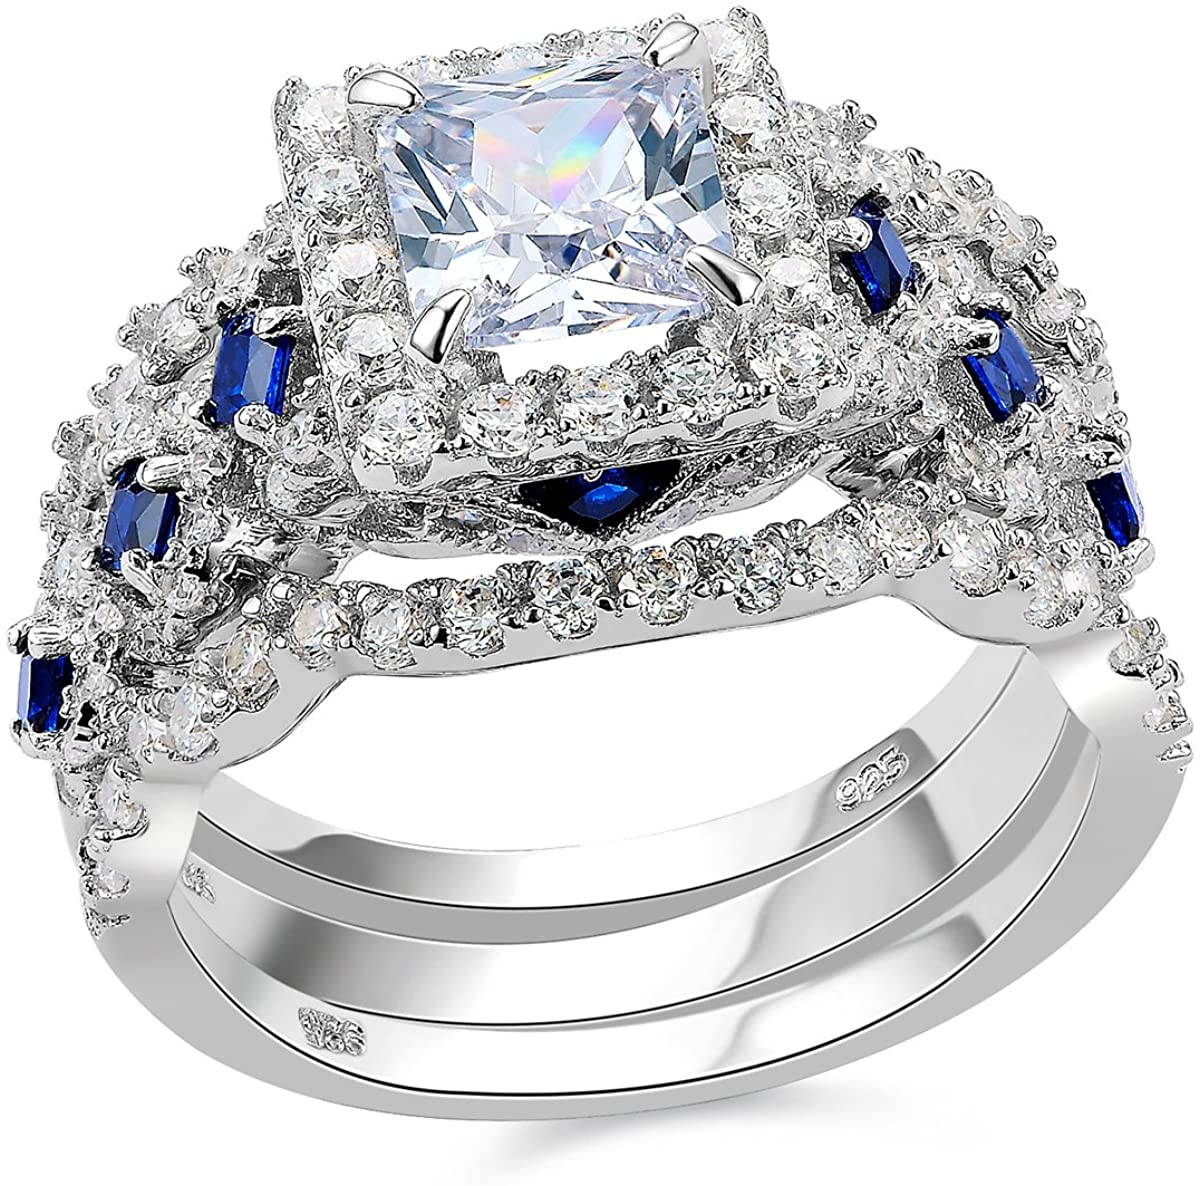 MARVELOUS 1.5 CT SAPPHIRE 925 STERLING SILVER RING SIZE 5-10